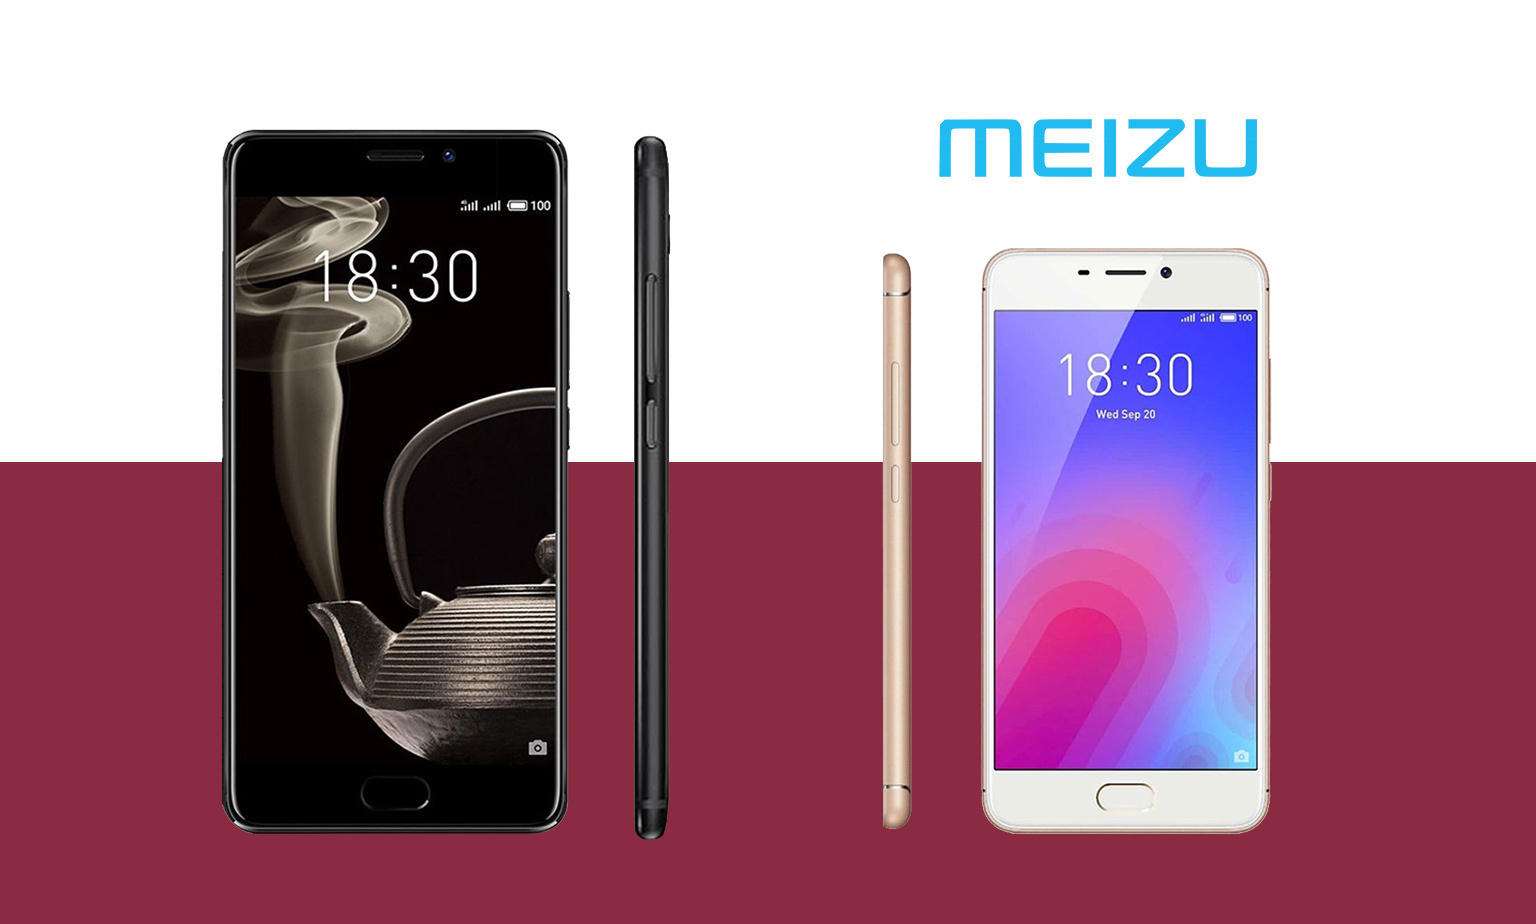 Meizu Brand Launch Special Offer 20% Off*